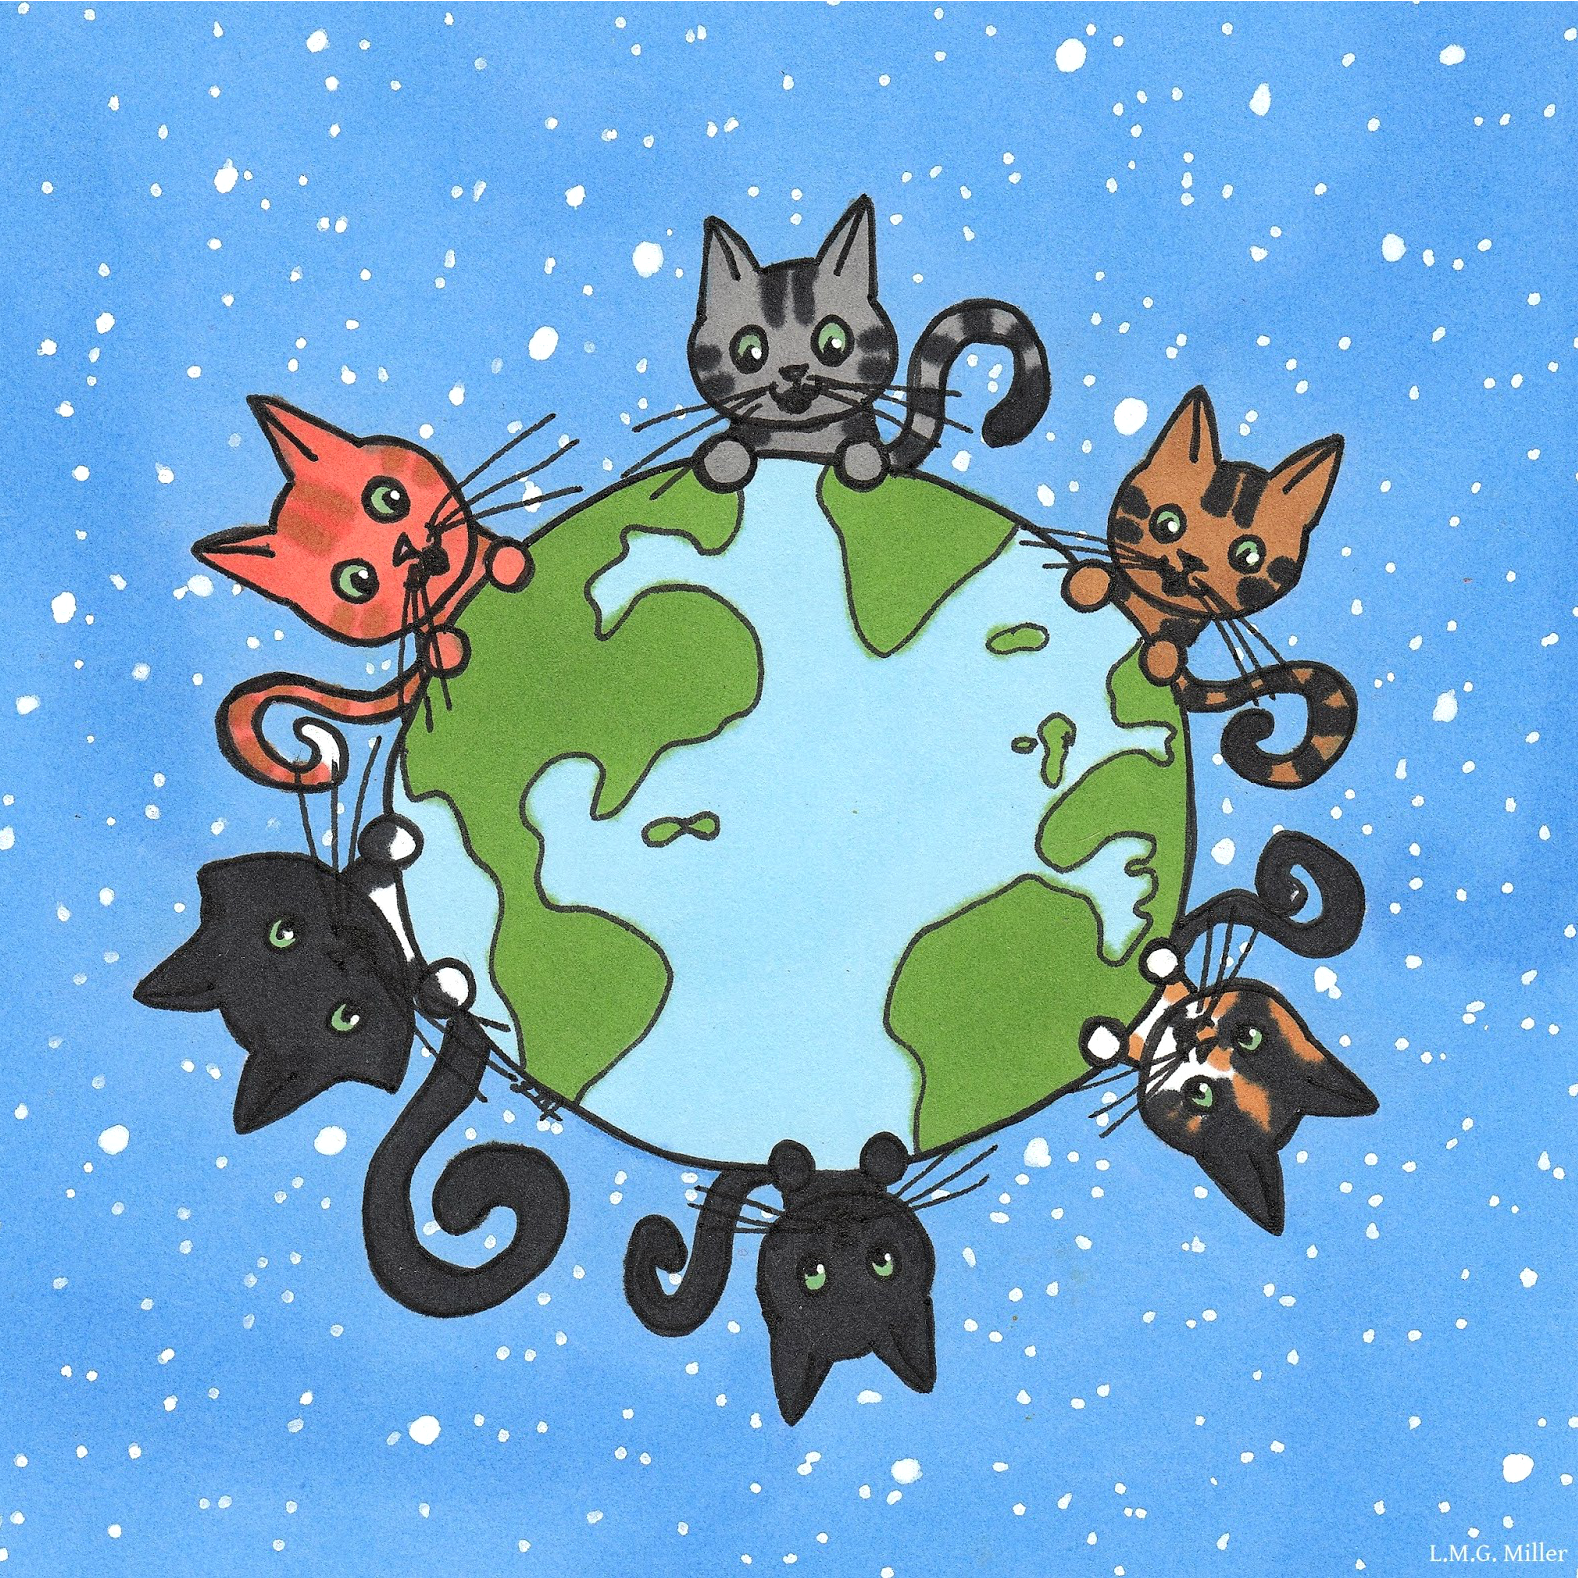 It's World Cat Day on August 8. Loving our cats!